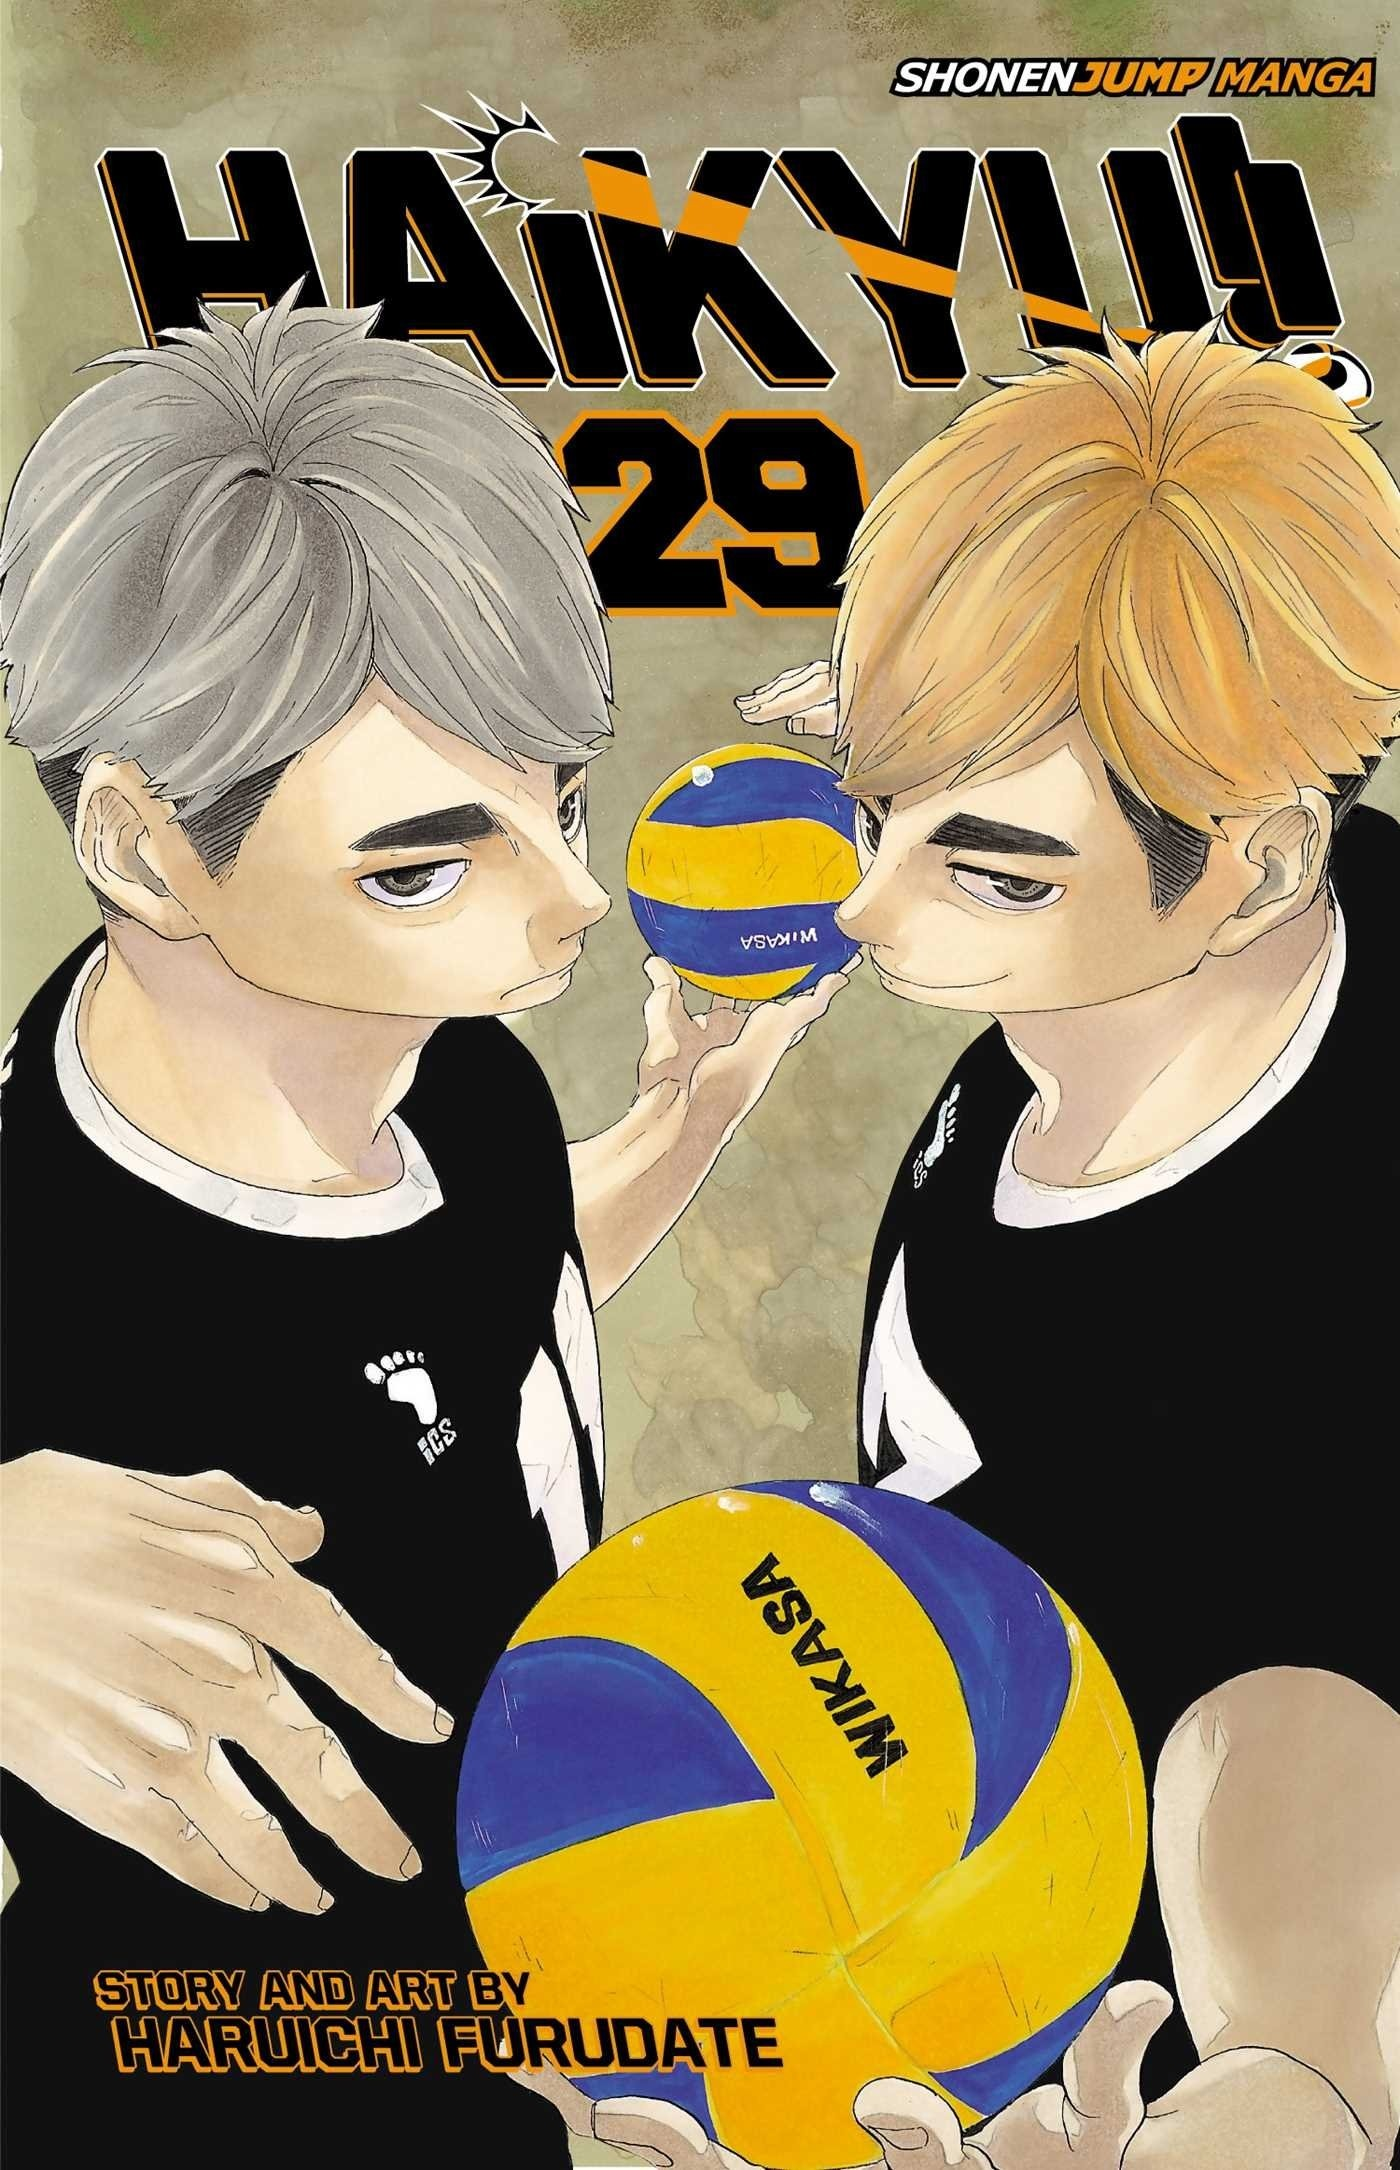 Haikyu!!, Vol. 29